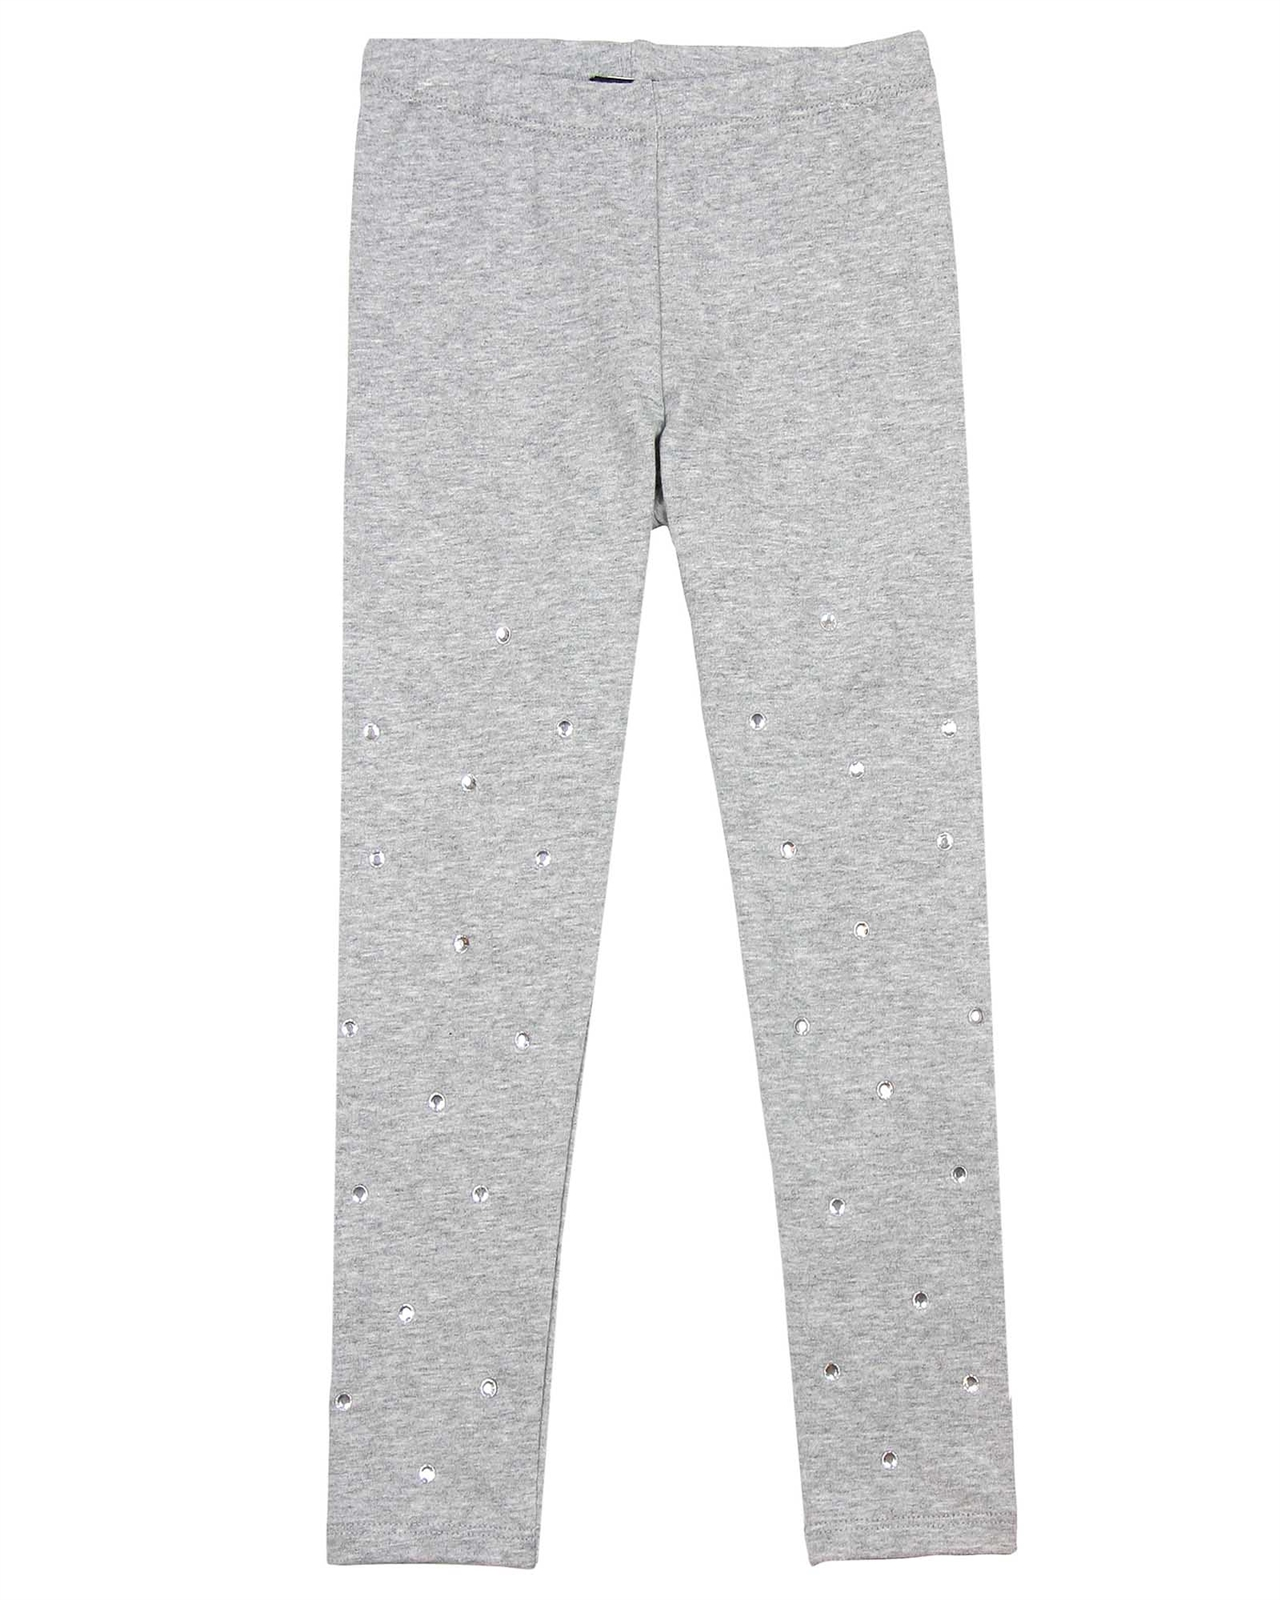 4ece089f9 Kate Mack Unicorn Dreams Leggings with Crystals | Biscotti and Kate ...